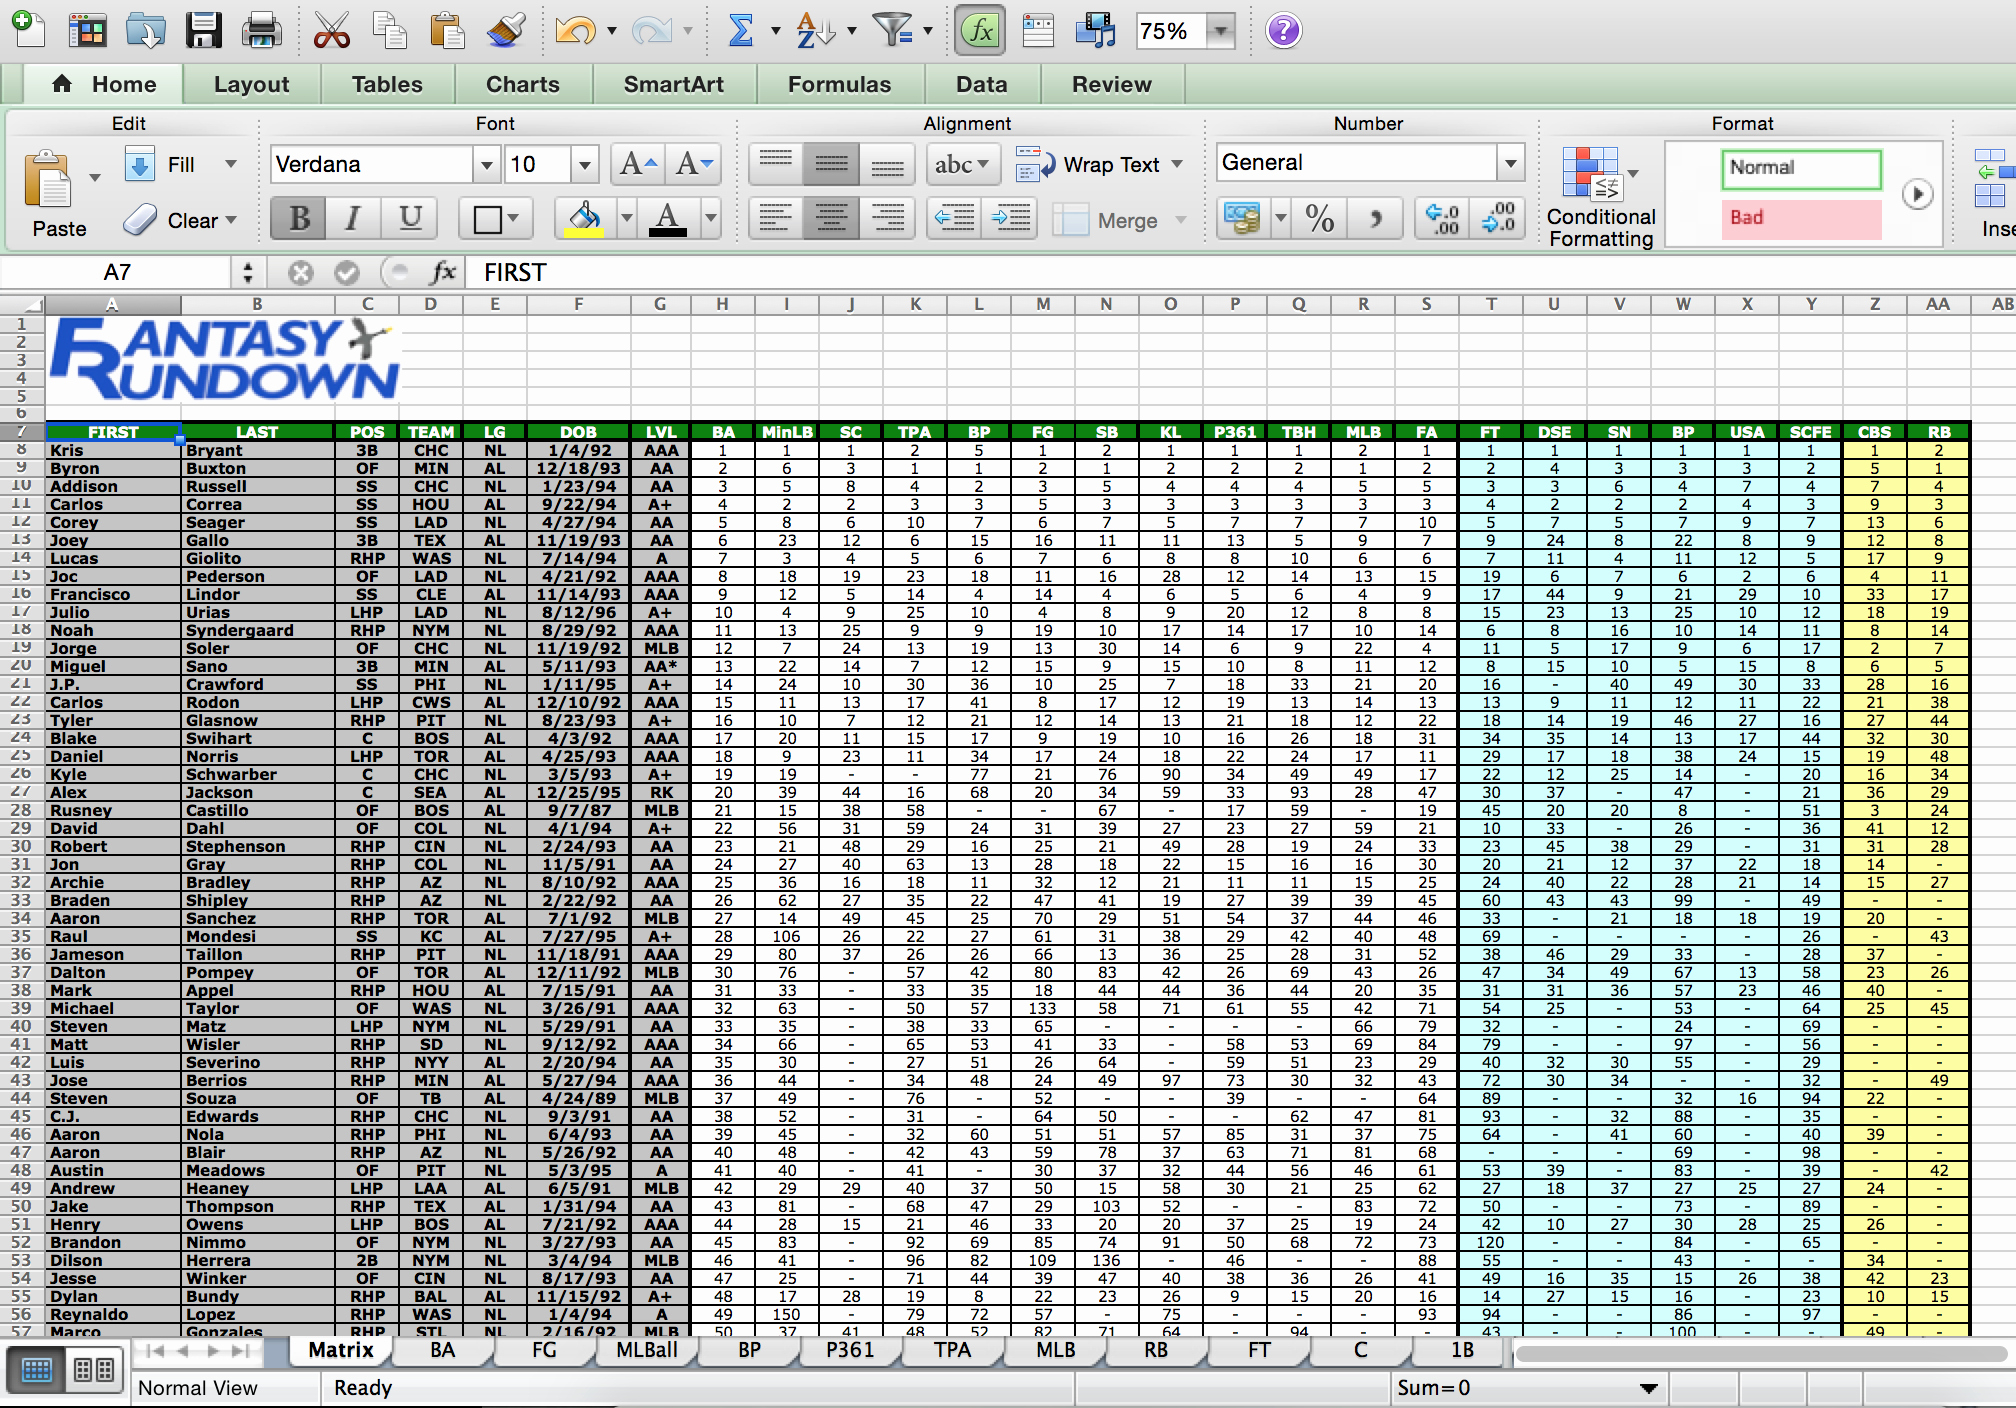 Nfl Scores Spreadsheet For Nfl Schedule Spreadsheet New Nfl Schedule 2018 Photos Jen Hill